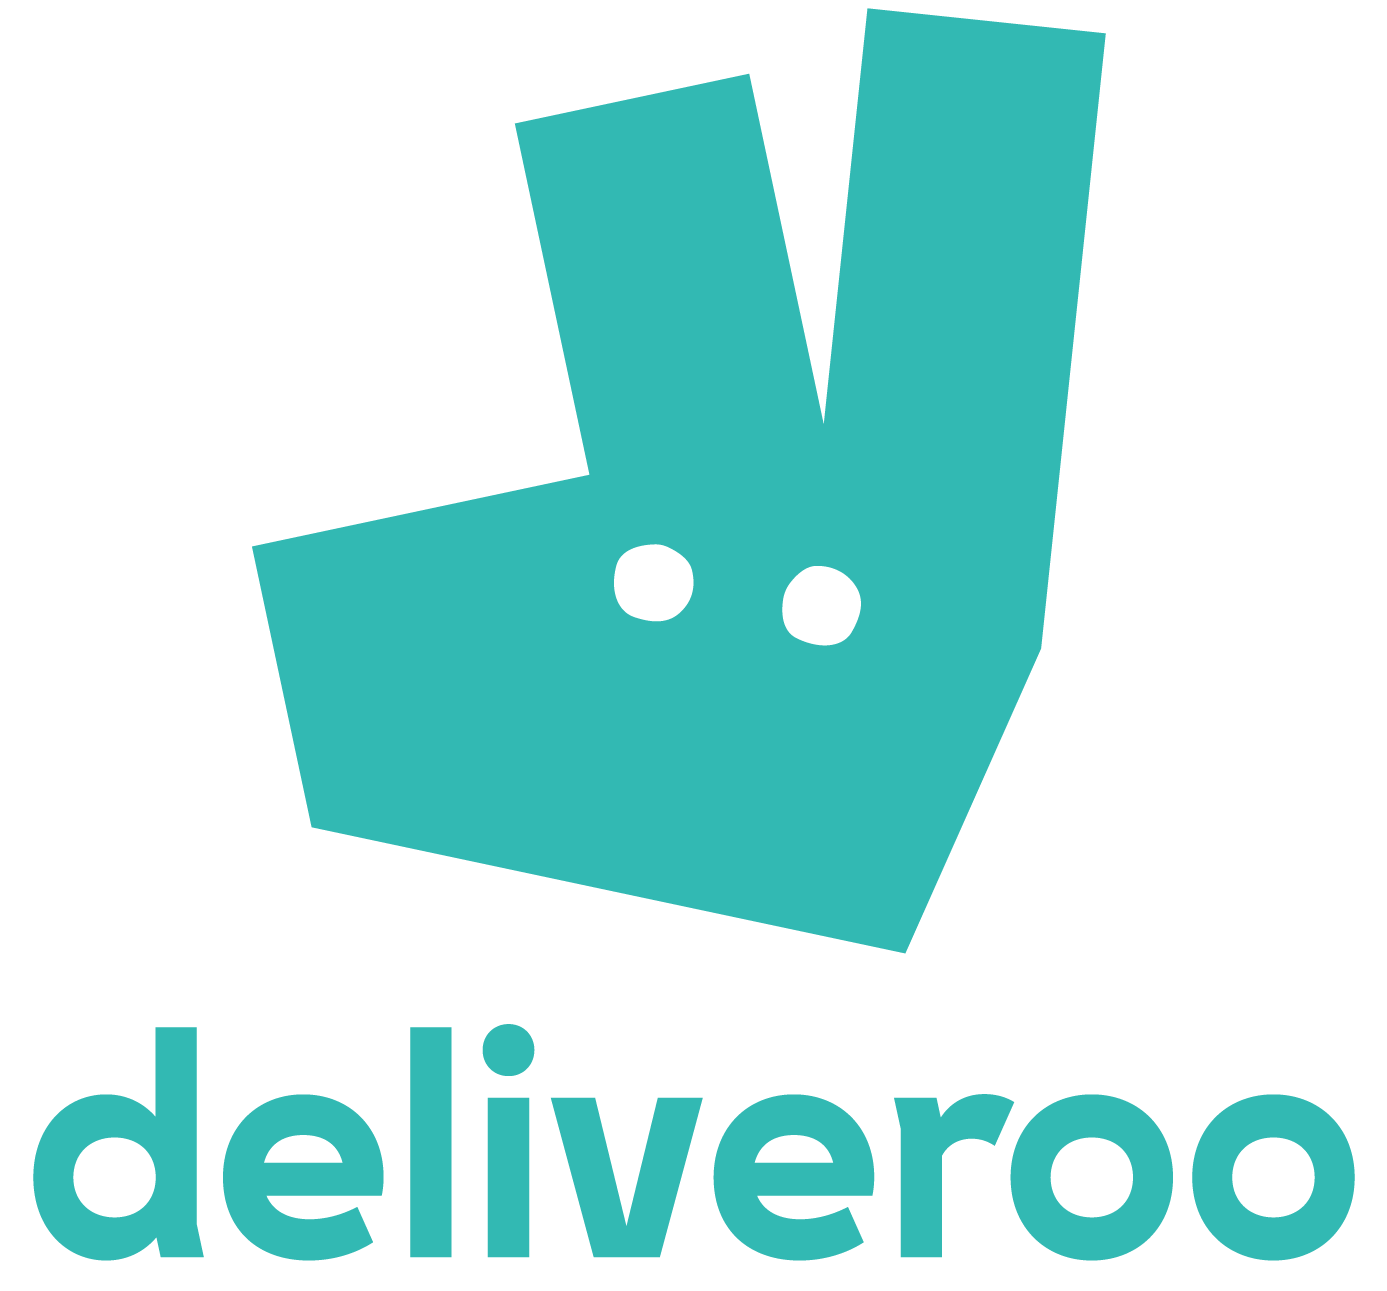 DELIVEROO compress